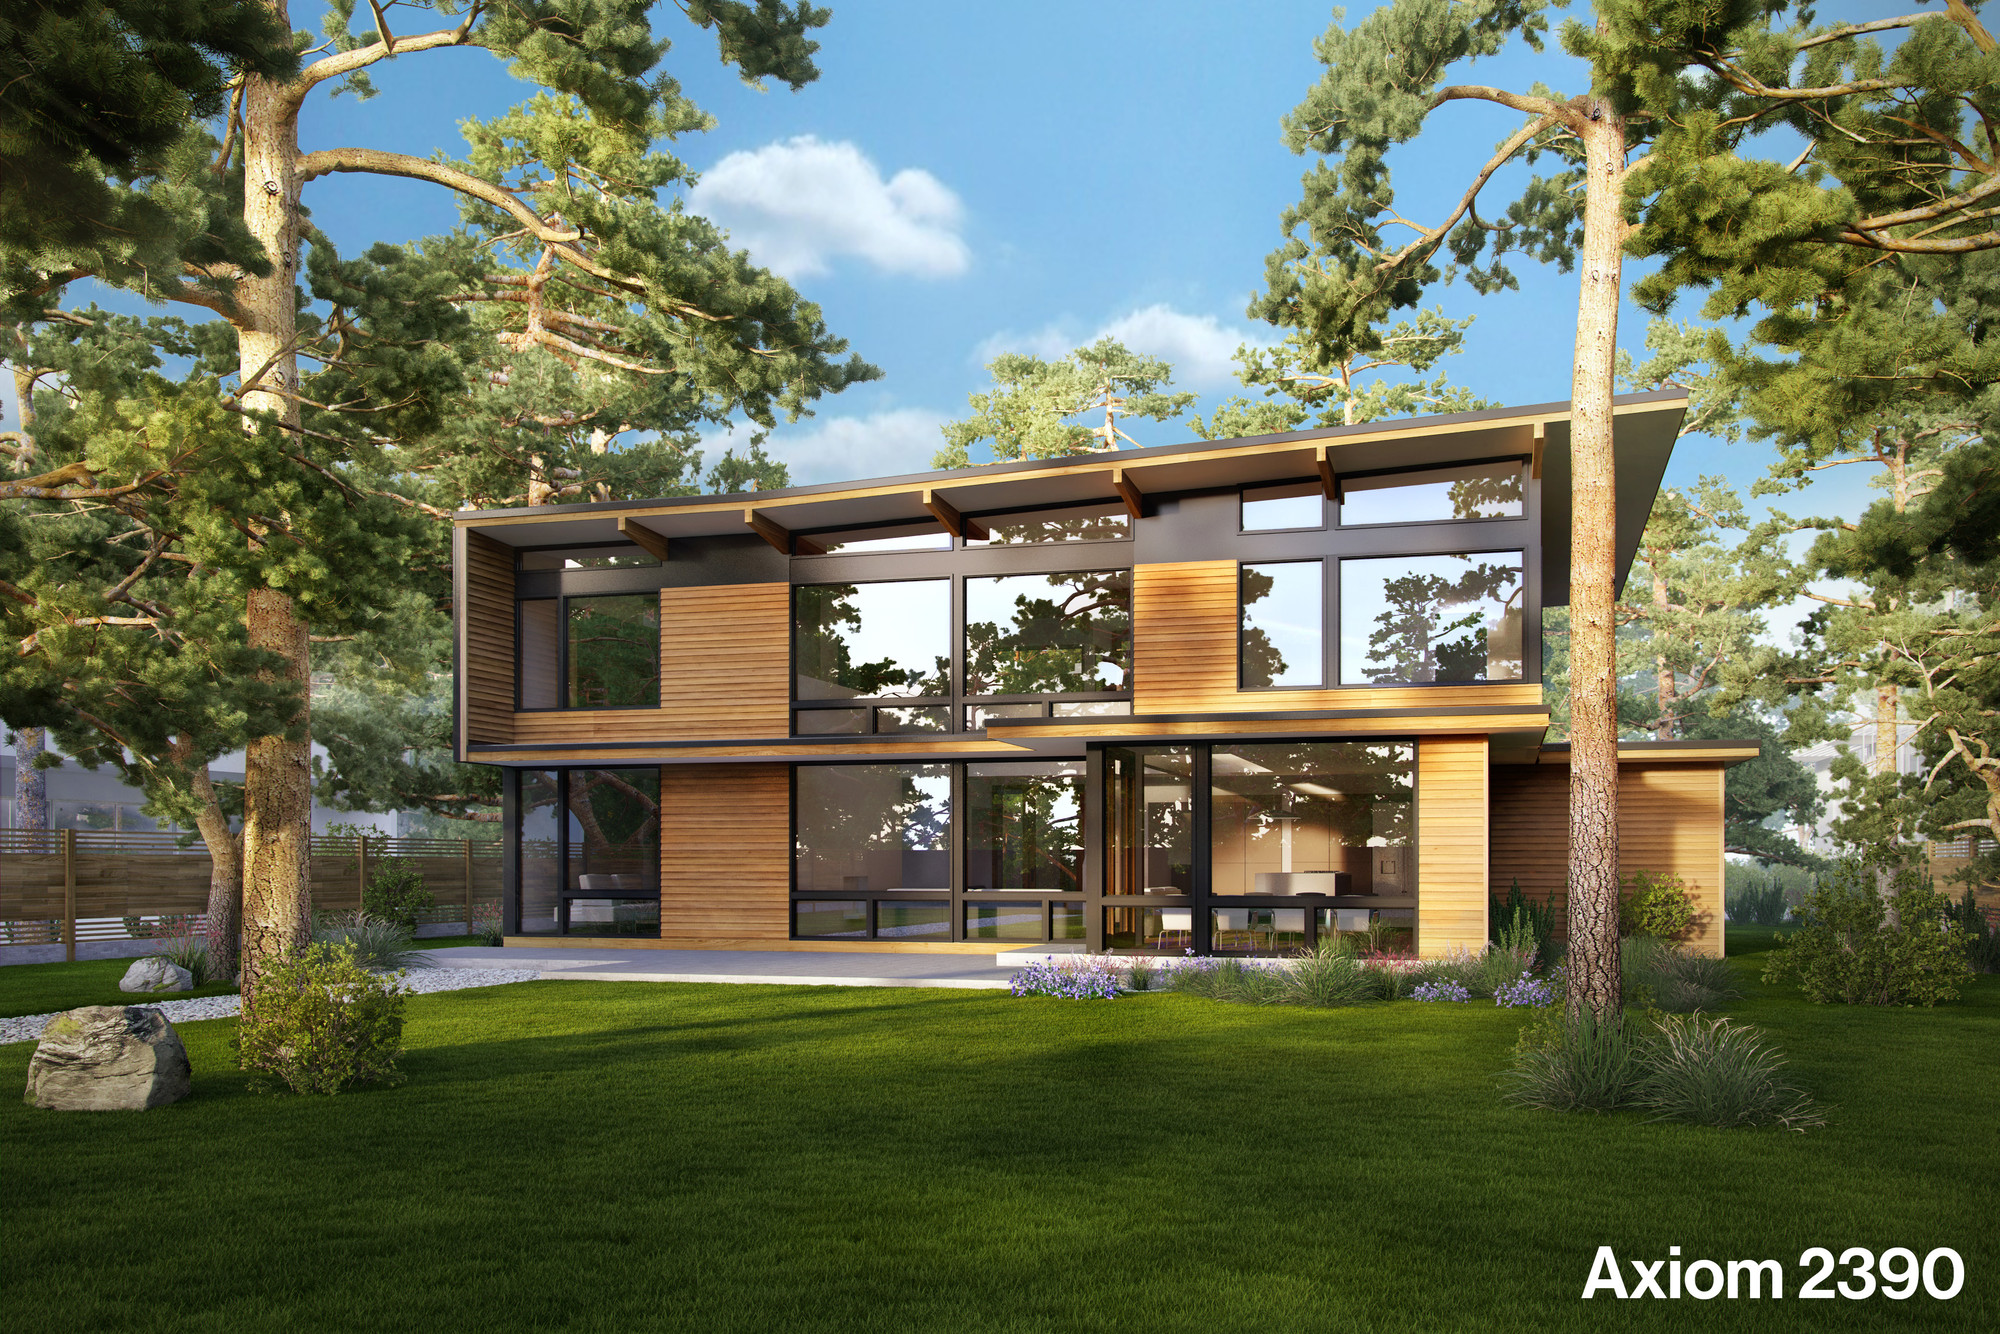 Dwell Partners with Turkel Design for Modern Prefab House Series